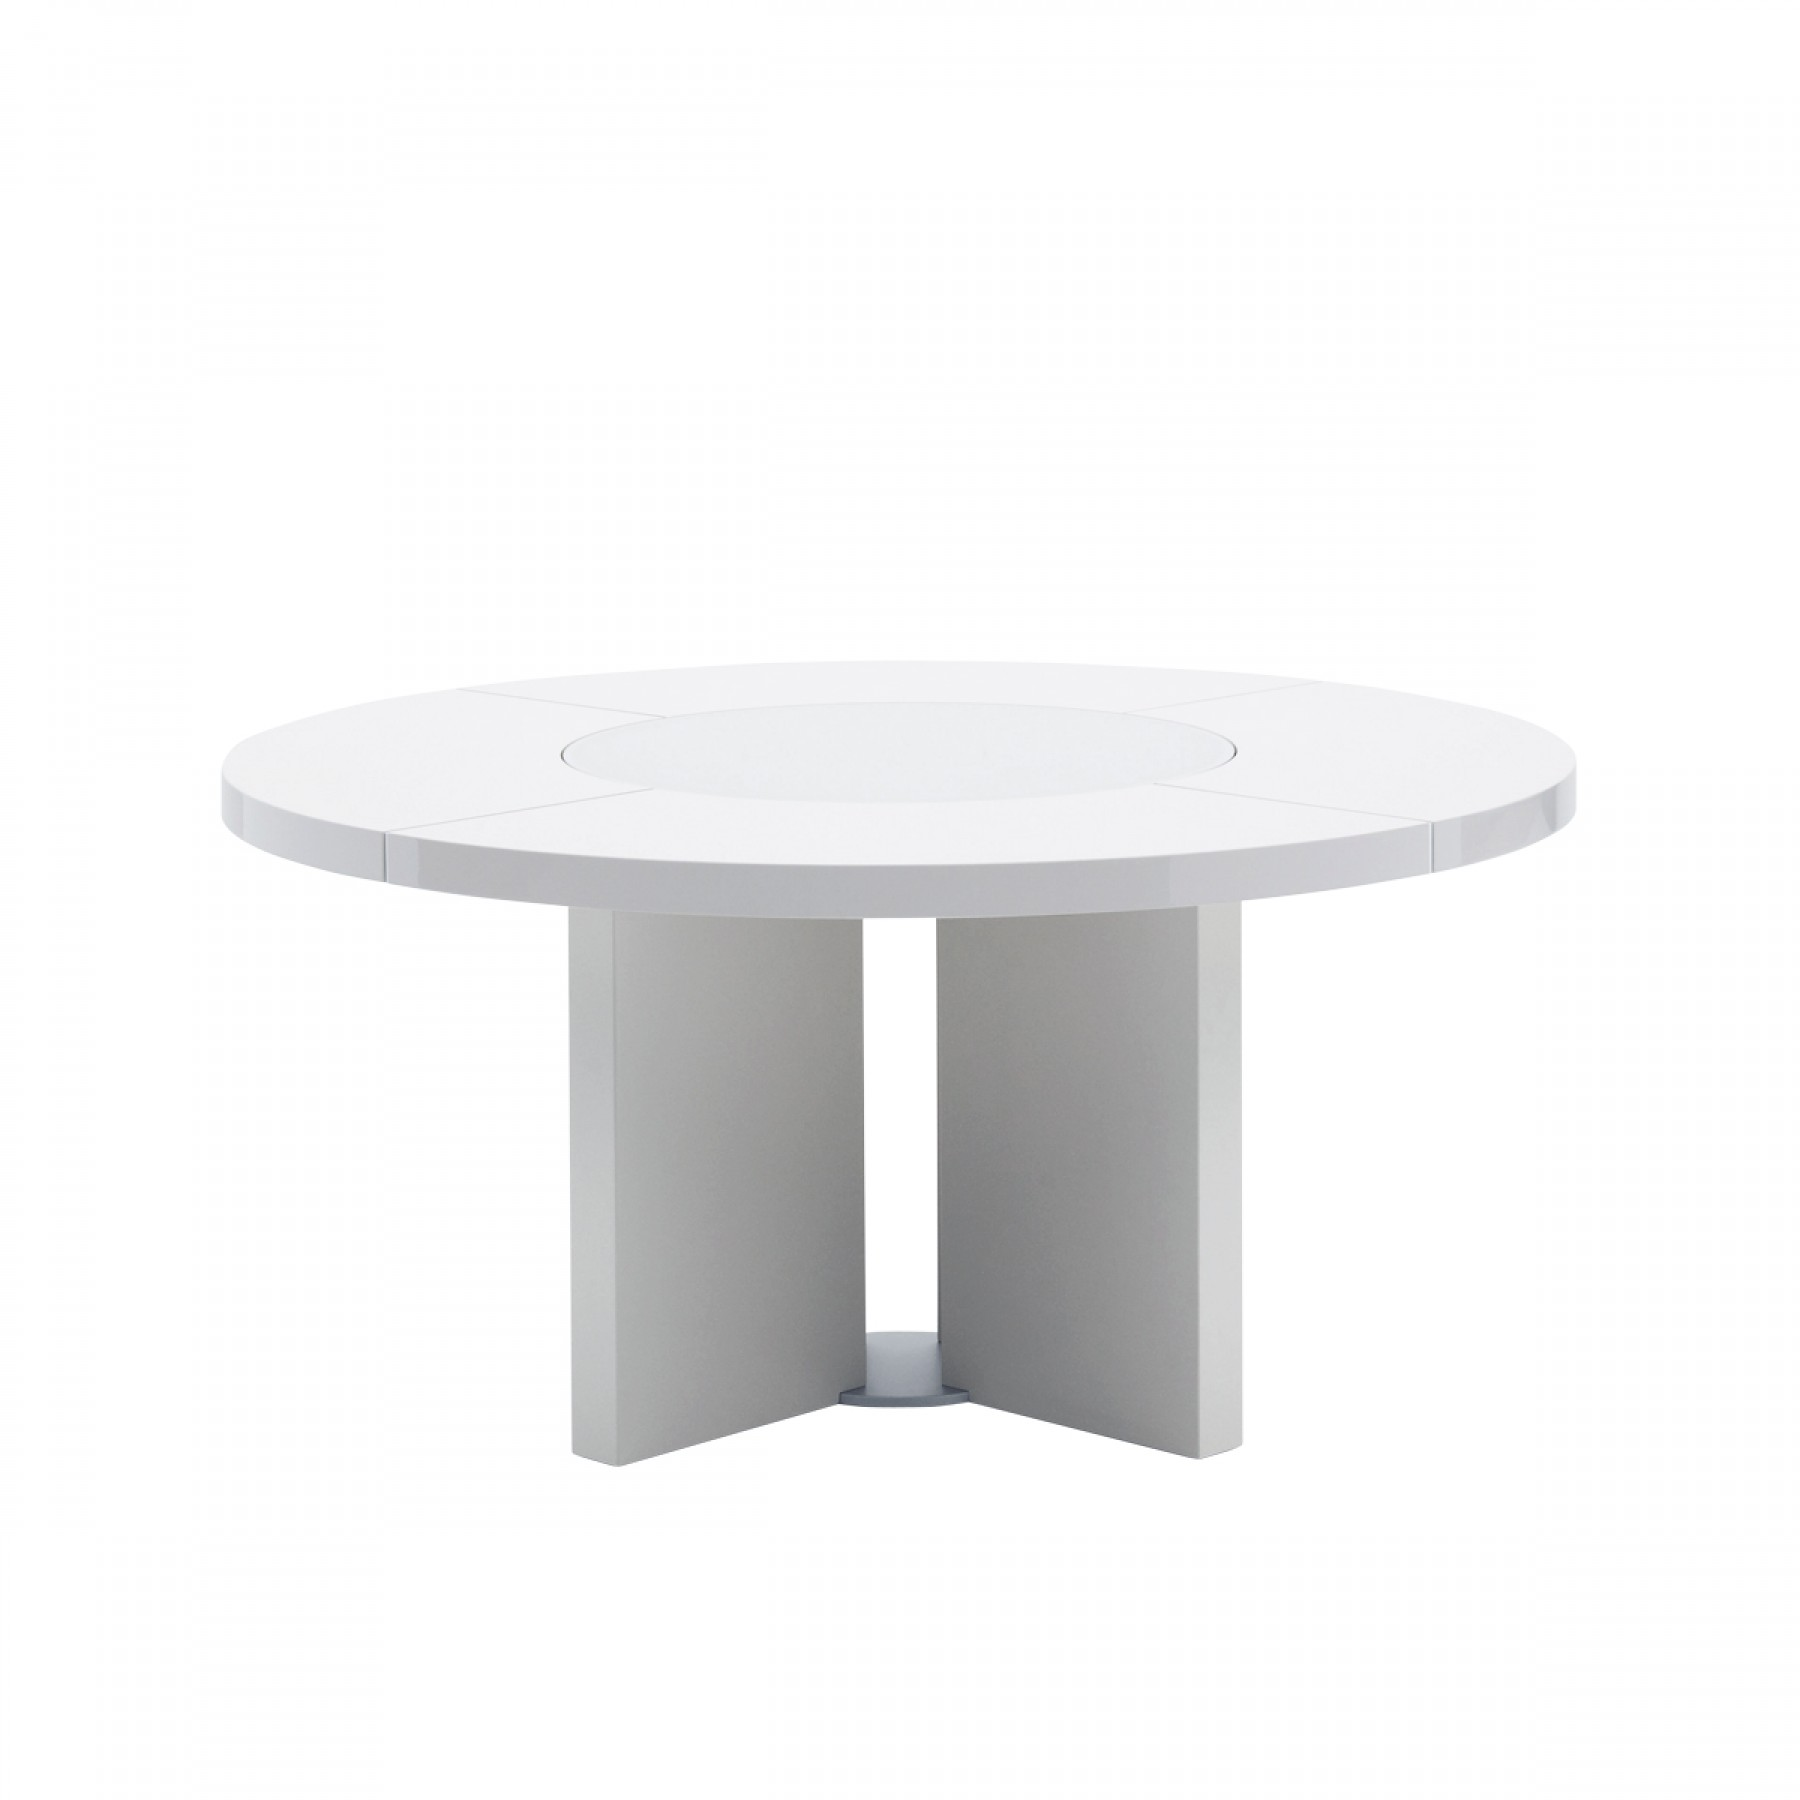 Midollo glossy white dining table beyond furniture White round dining table